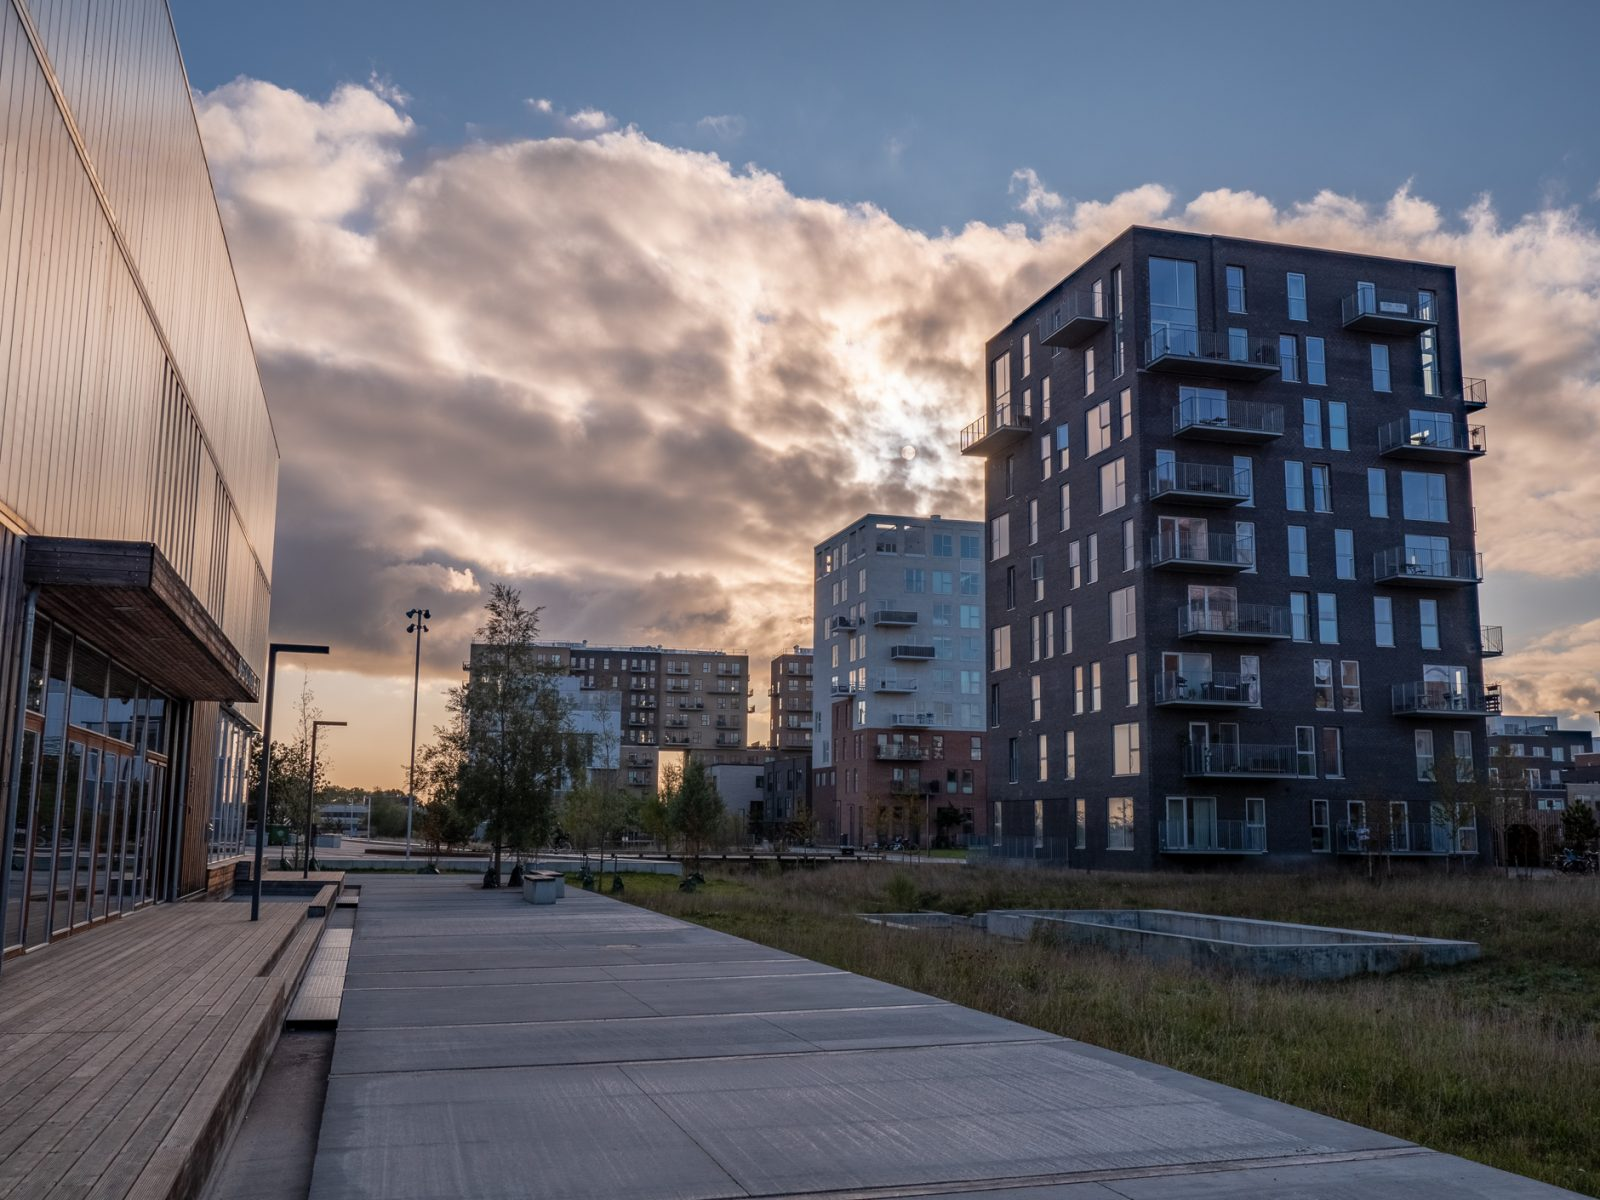 The Royal Arena neighborhood in Ørestad, fall 2019, by Ørestad based photographer Stefan Grage